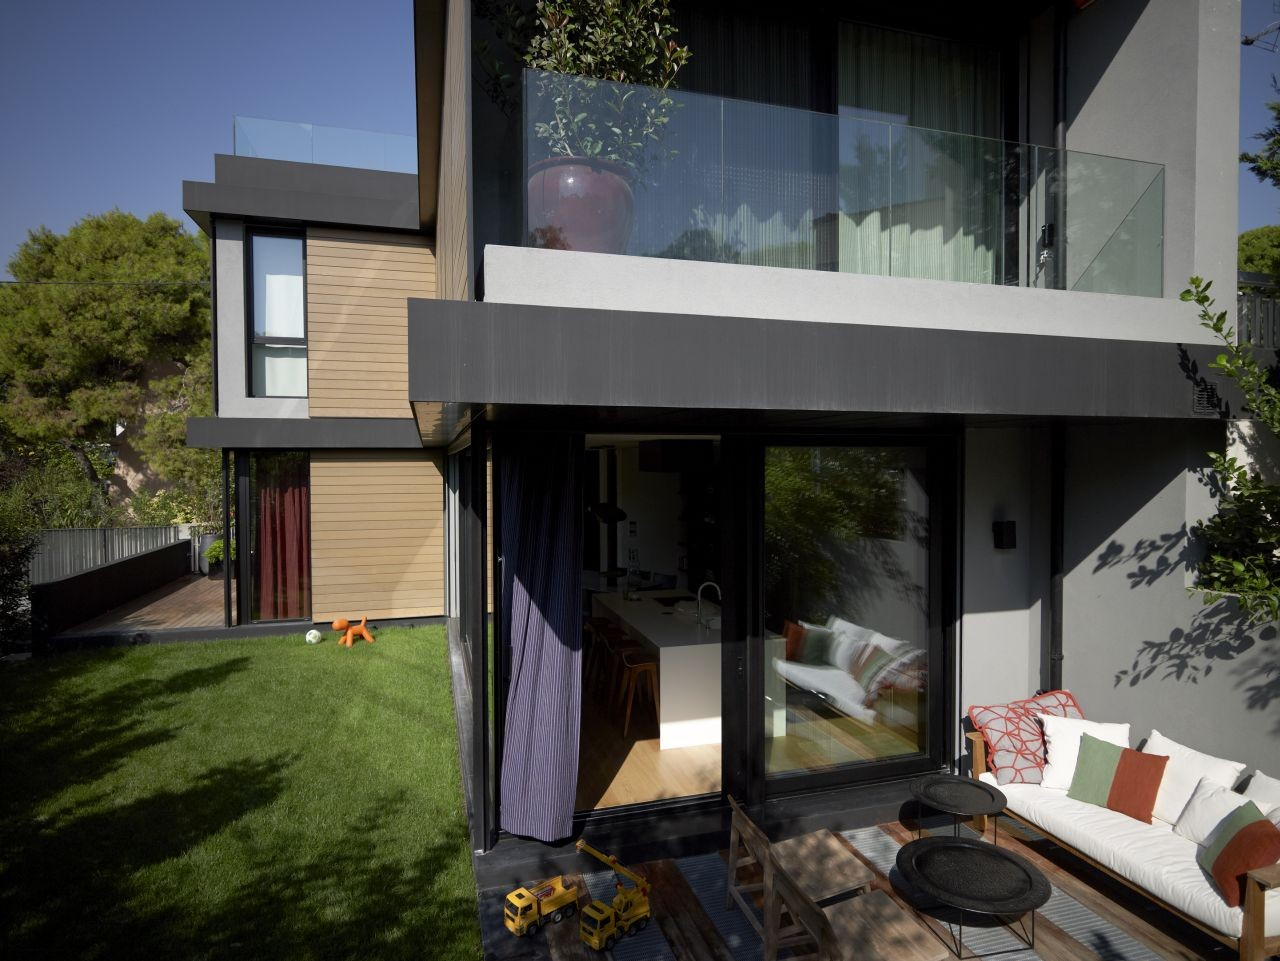 Single Family House in Kifisia / Spacelab Architects